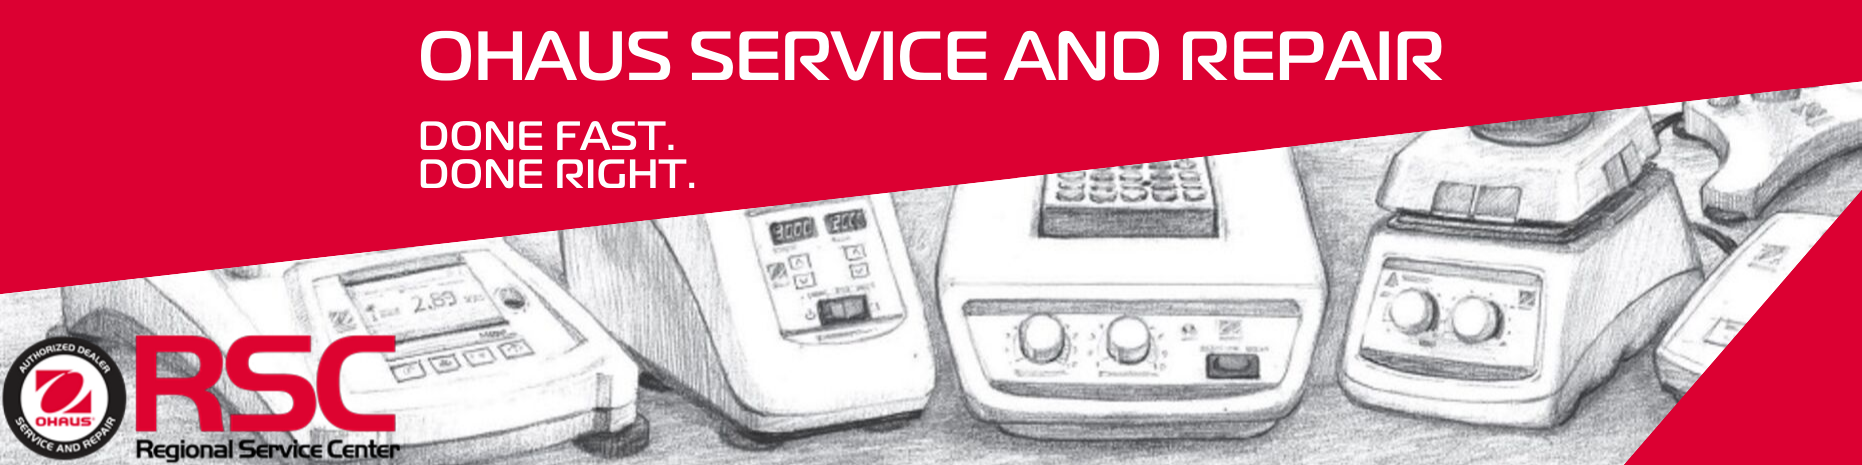 ohaus-service-page-banner.png